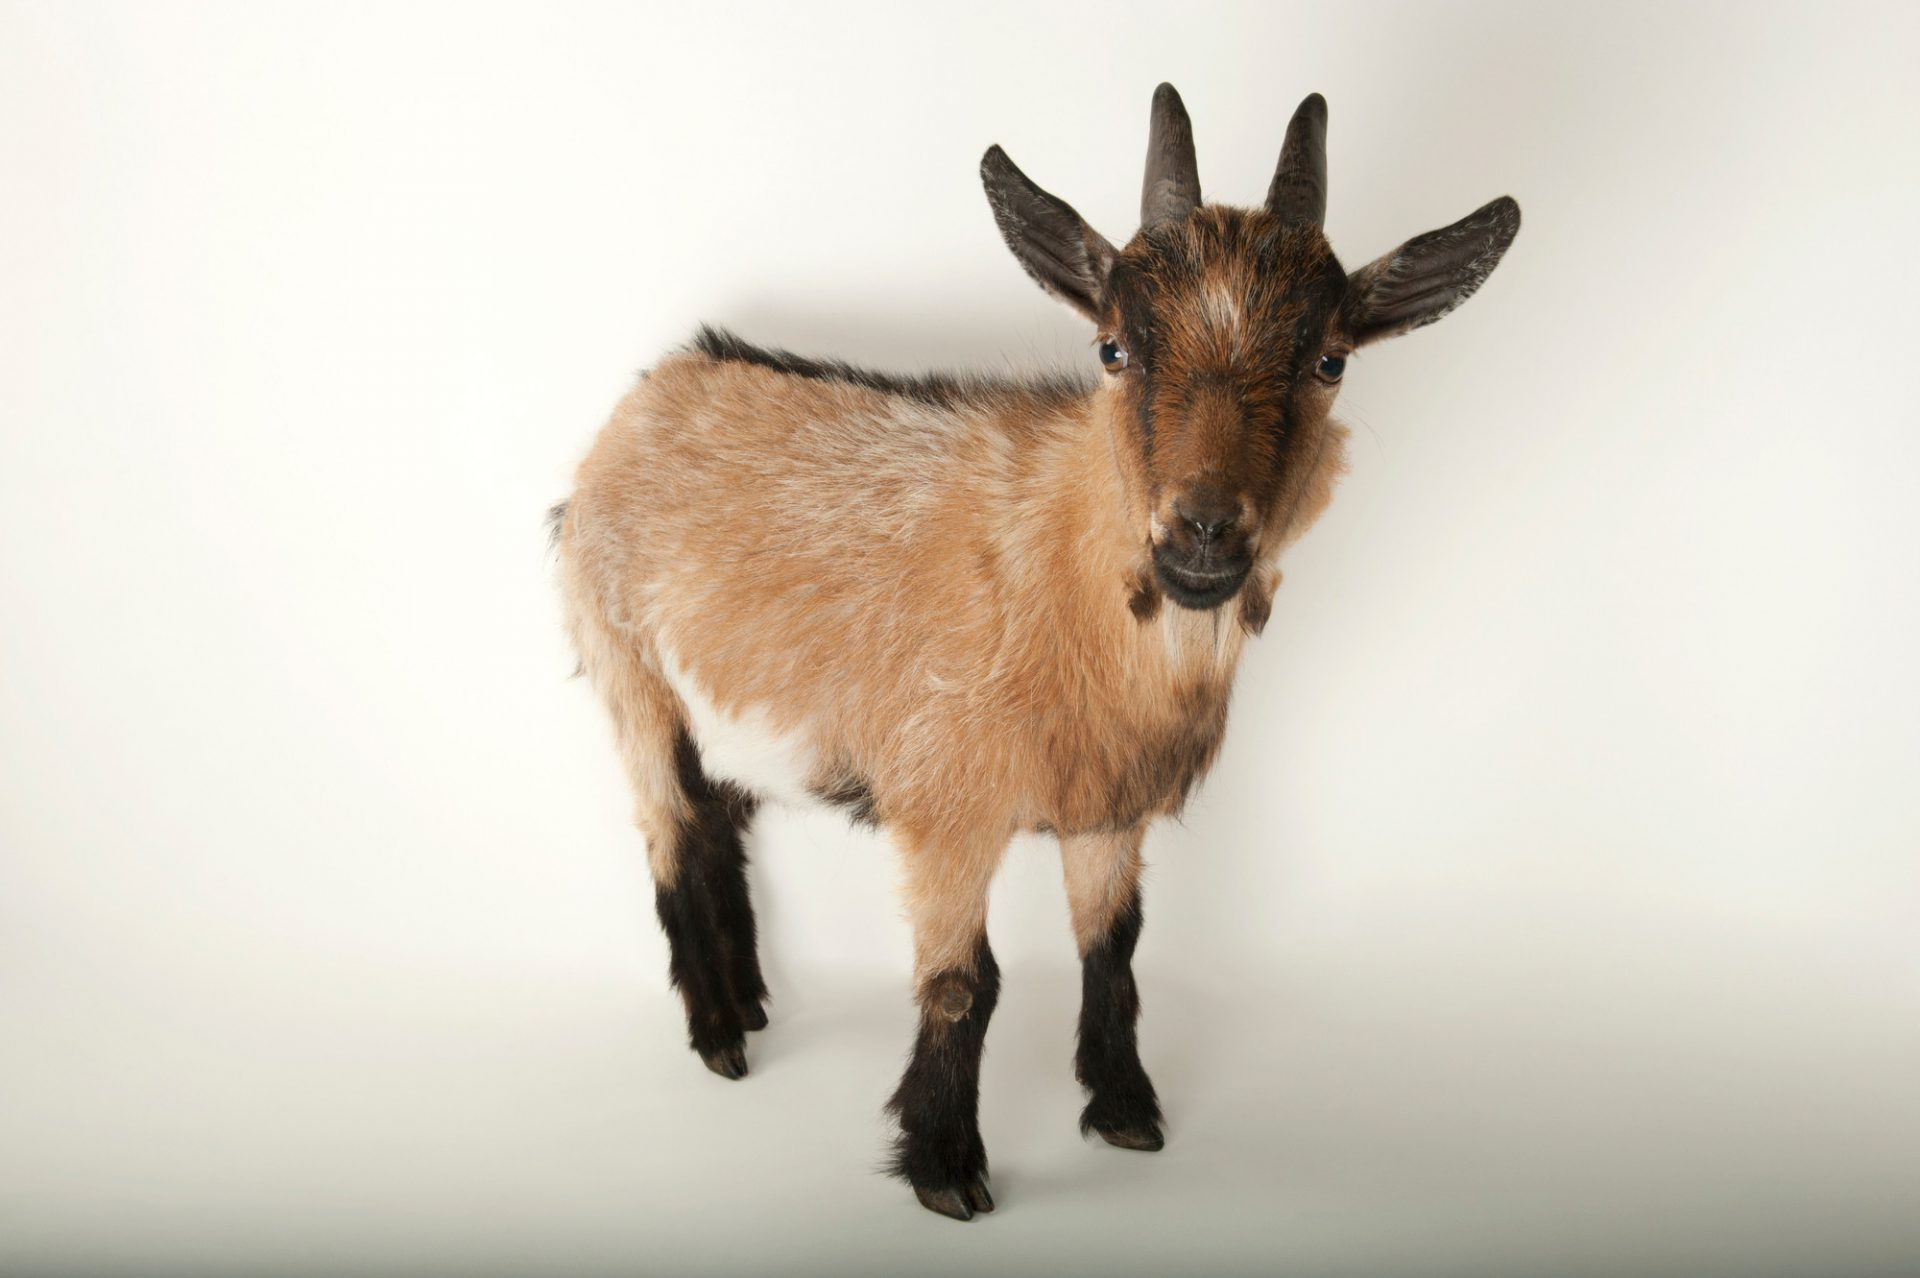 Photo: Pygmy goat at the Lincoln Children's Zoo.